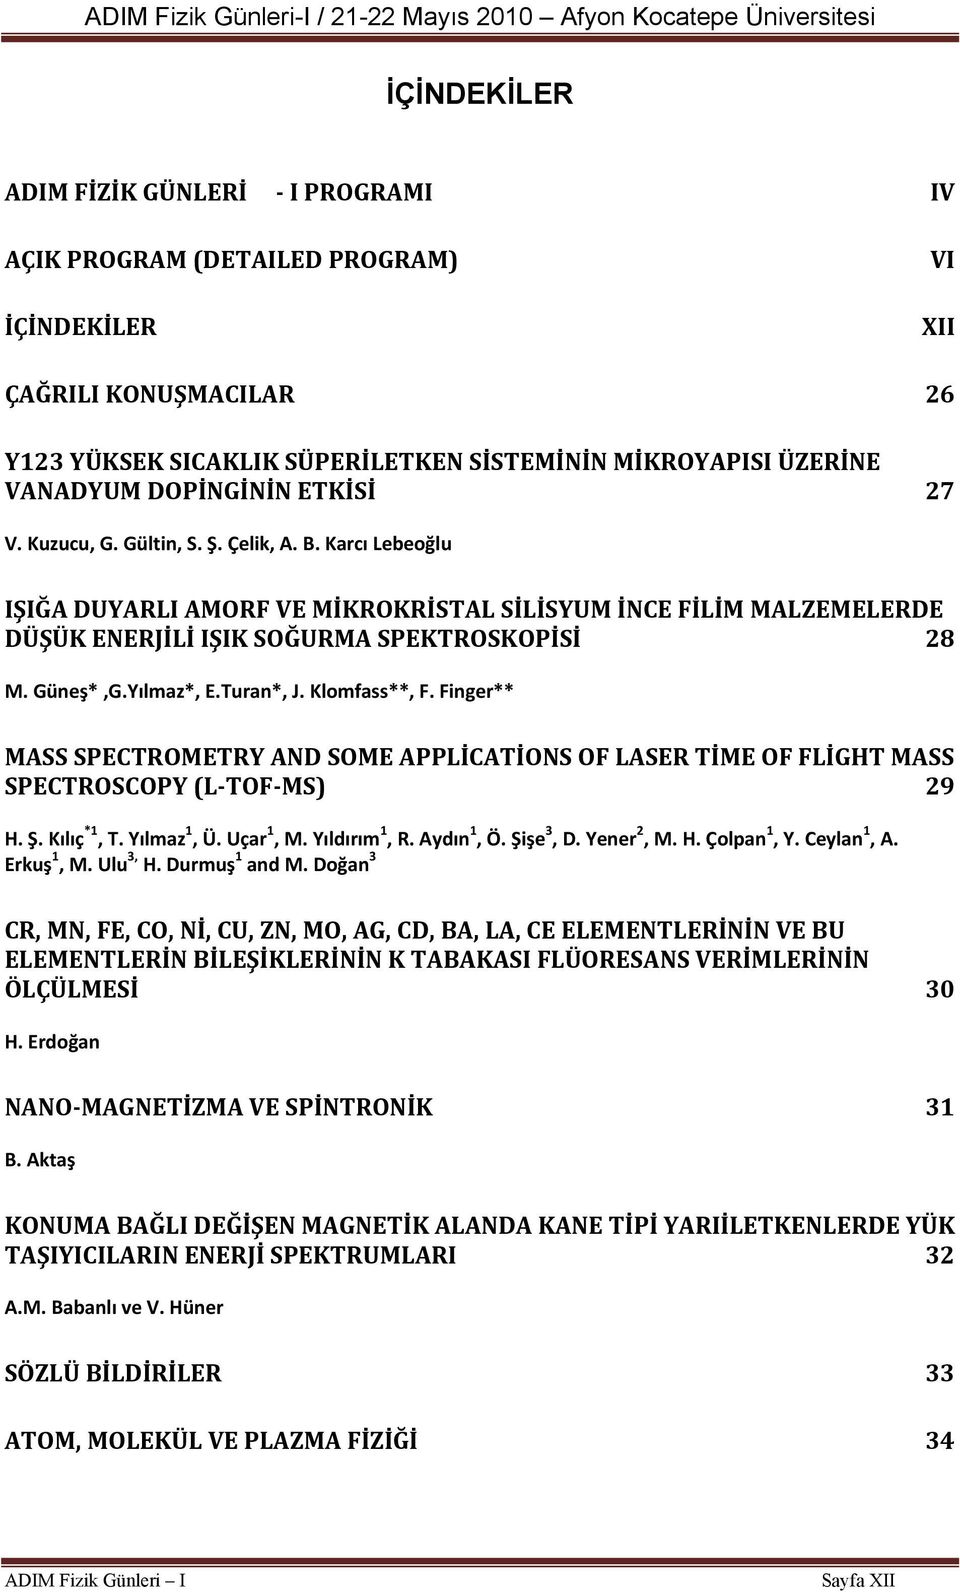 Güneş*,G.Yılmaz*, E.Turan*, J. Klomfass**, F. Finger** MASS SPECTROMETRY AND SOME APPLİCATİONS OF LASER TİME OF FLİGHT MASS SPECTROSCOPY (L TOF MS) 29 H. Ş. Kılıç *1, T. Yılmaz 1, Ü. Uçar 1, M.